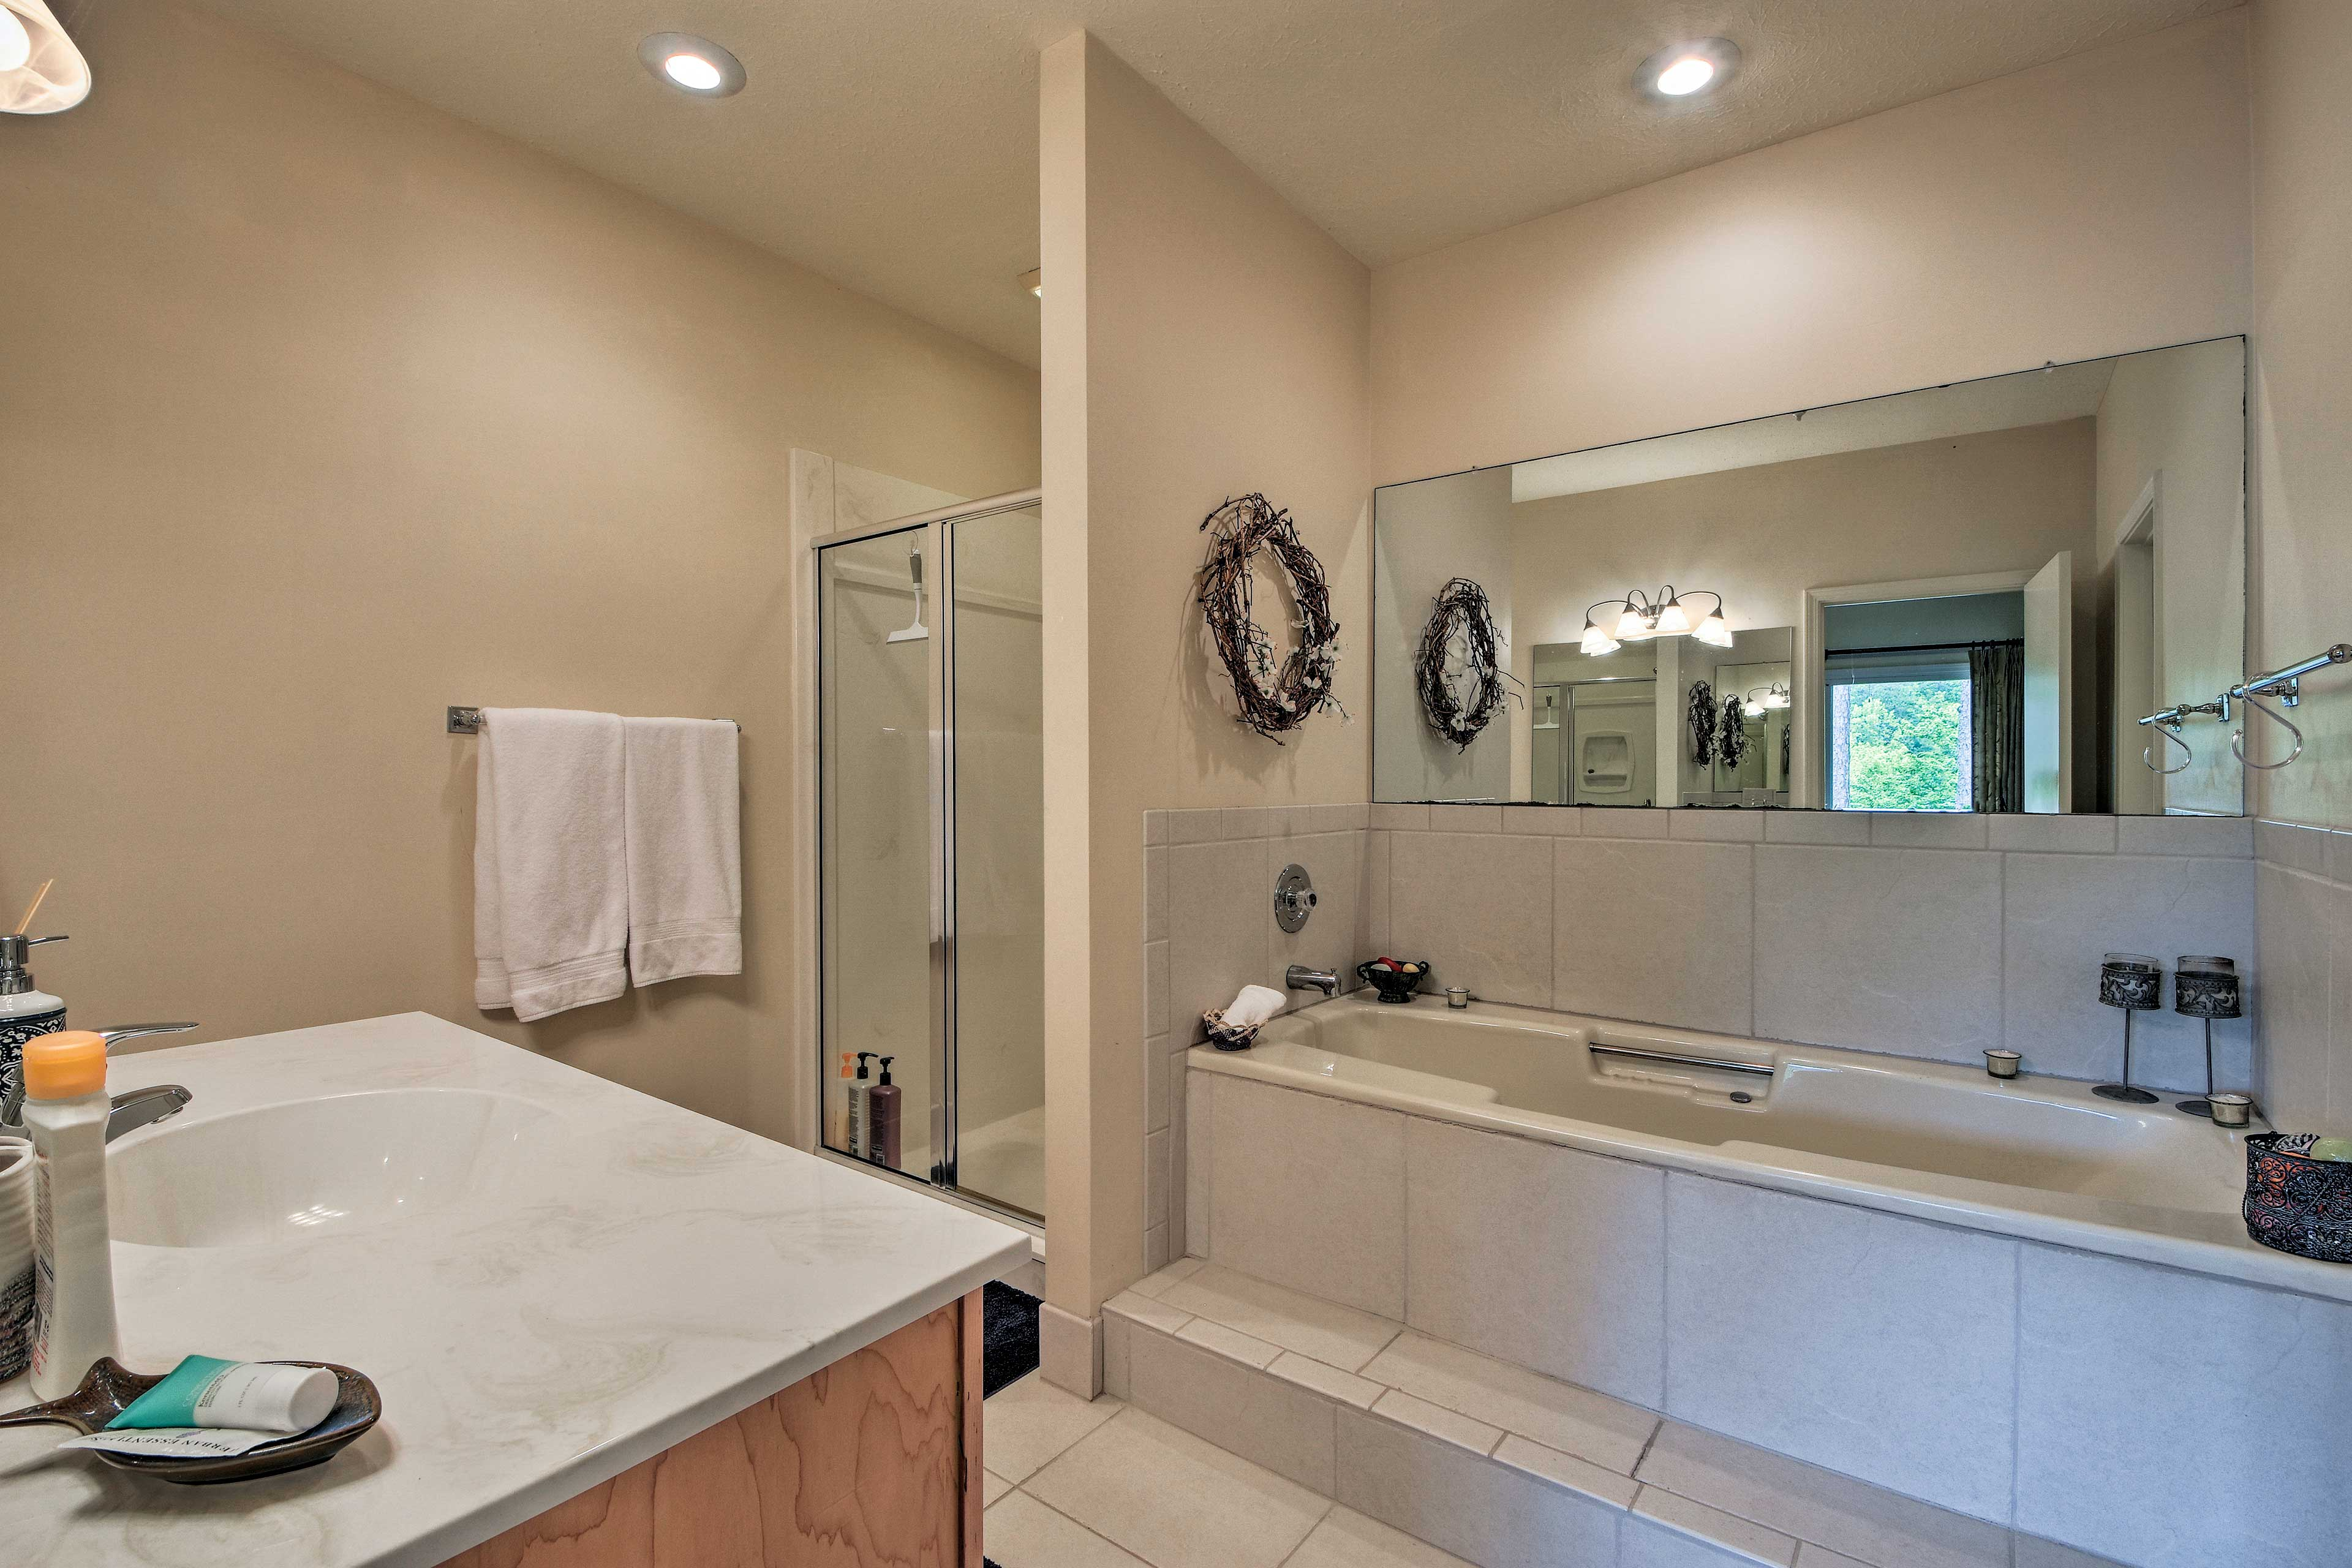 The en-suite bathroom features a soaking tub and a separate shower.